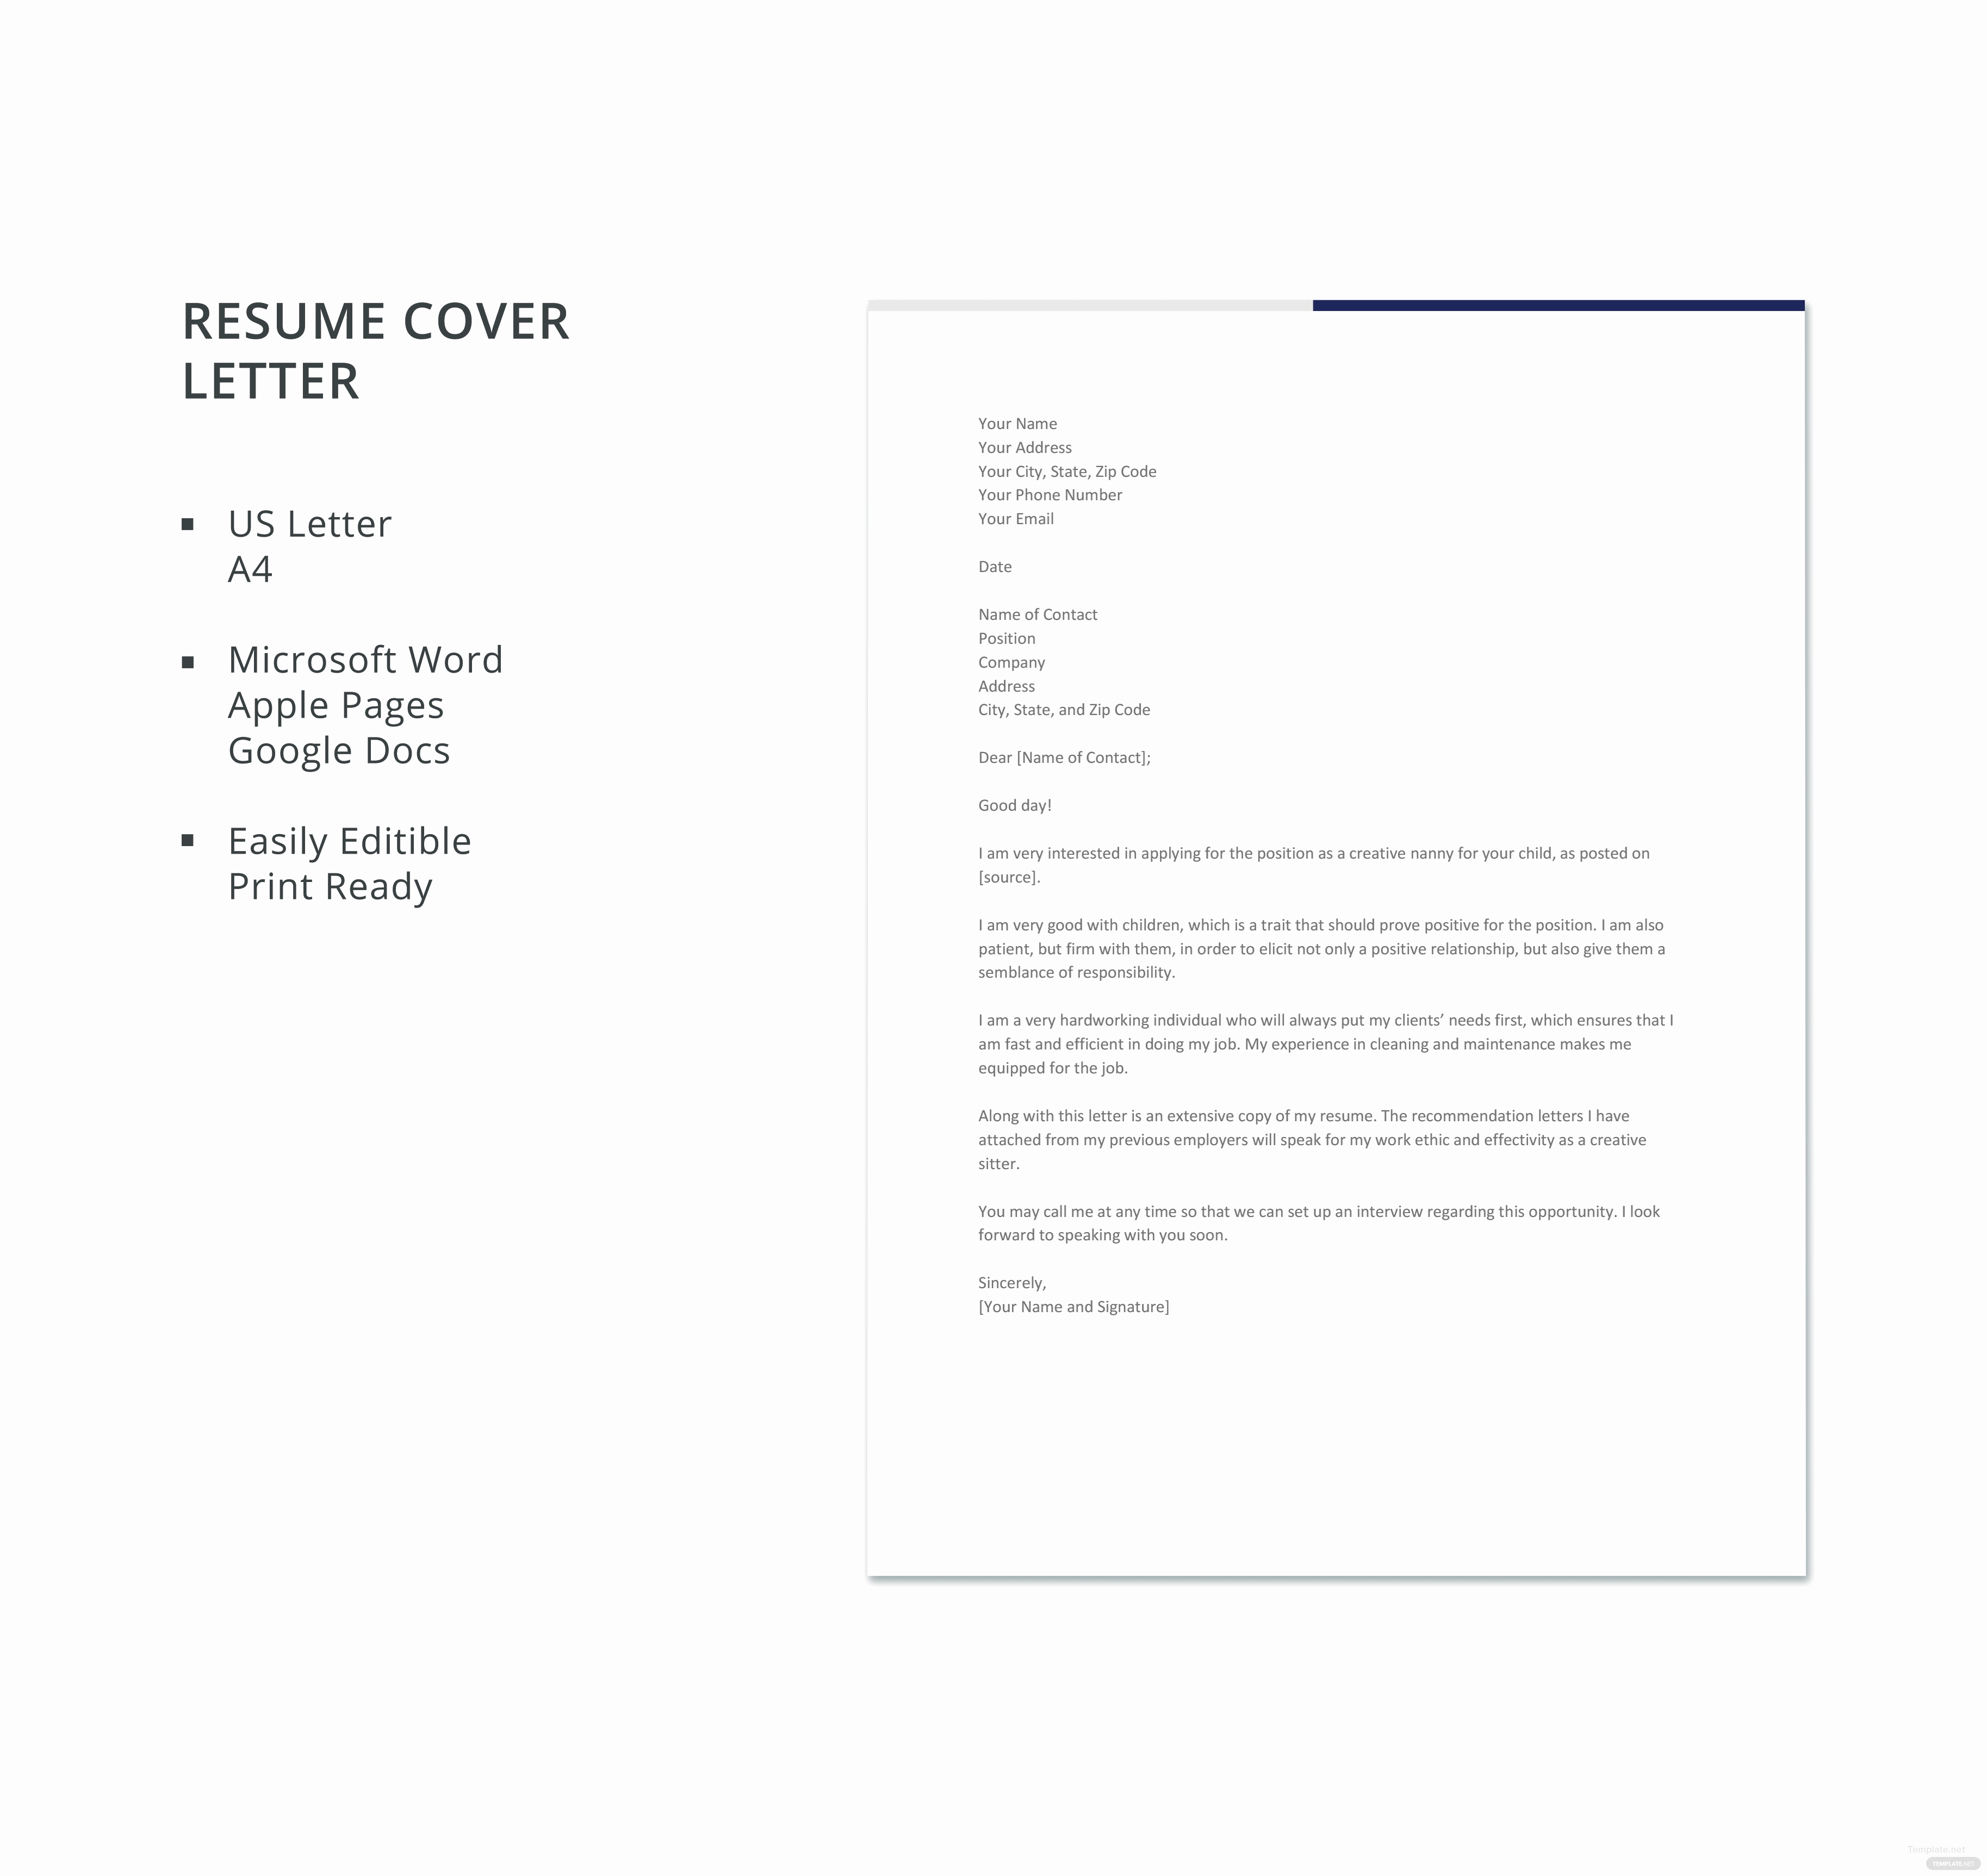 Creative Cover Letter Template Luxury Free Creative Nanny Resume Cover Letter Template In